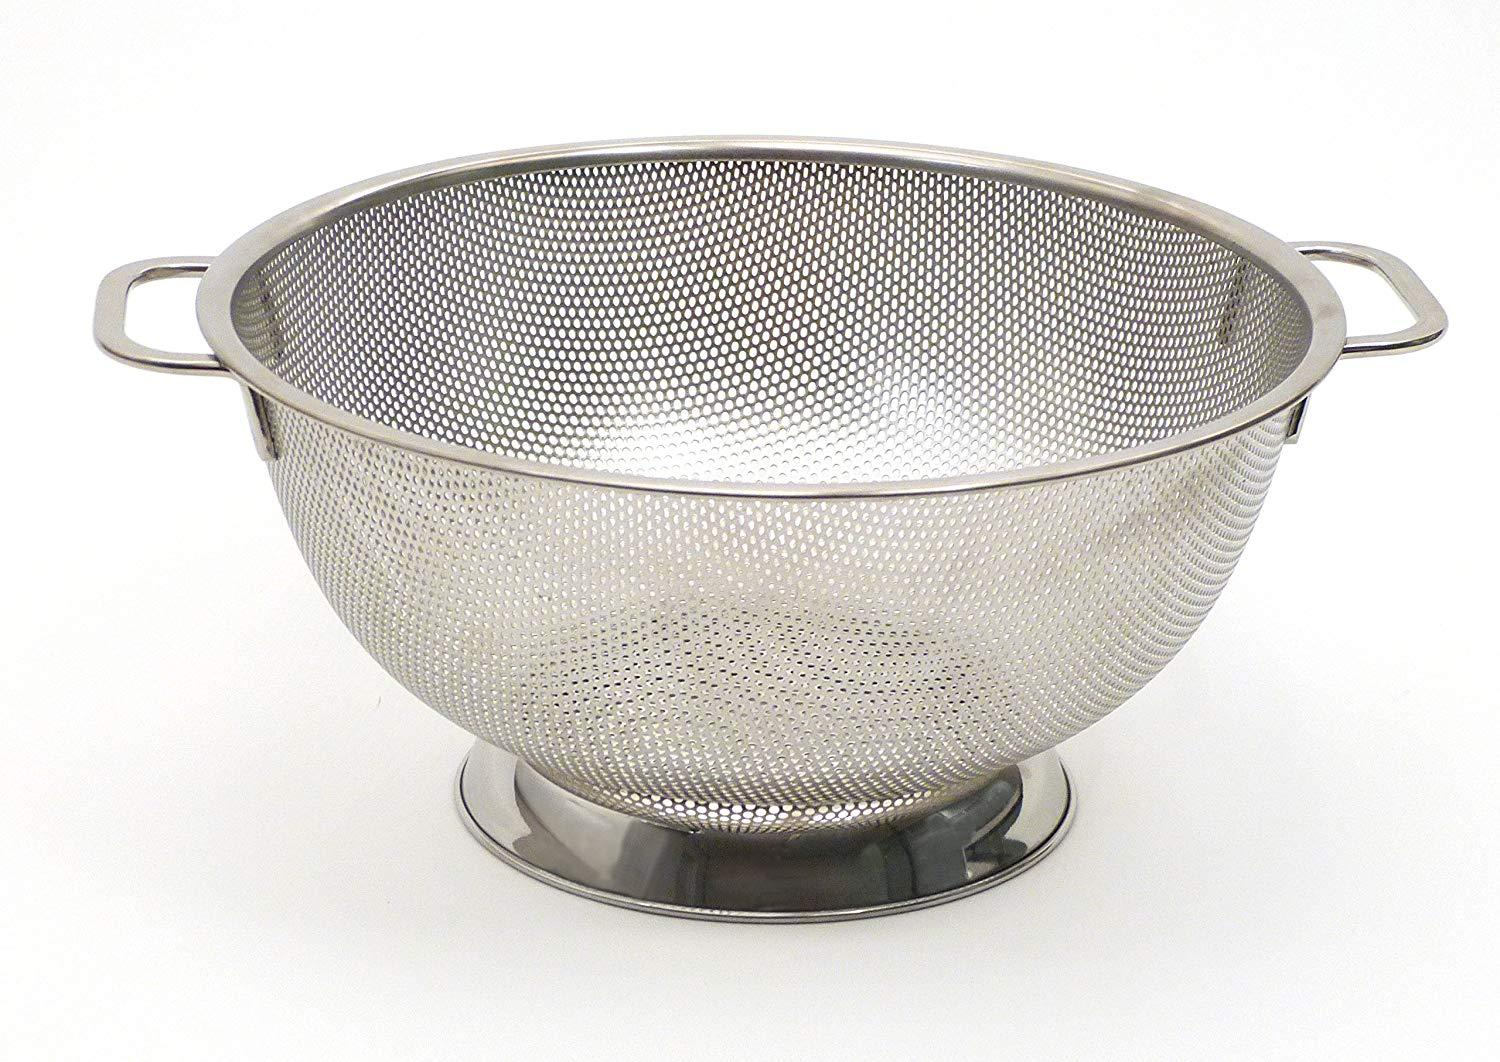 Stainless Steel Punched Hole Precision Pierced Colander 1